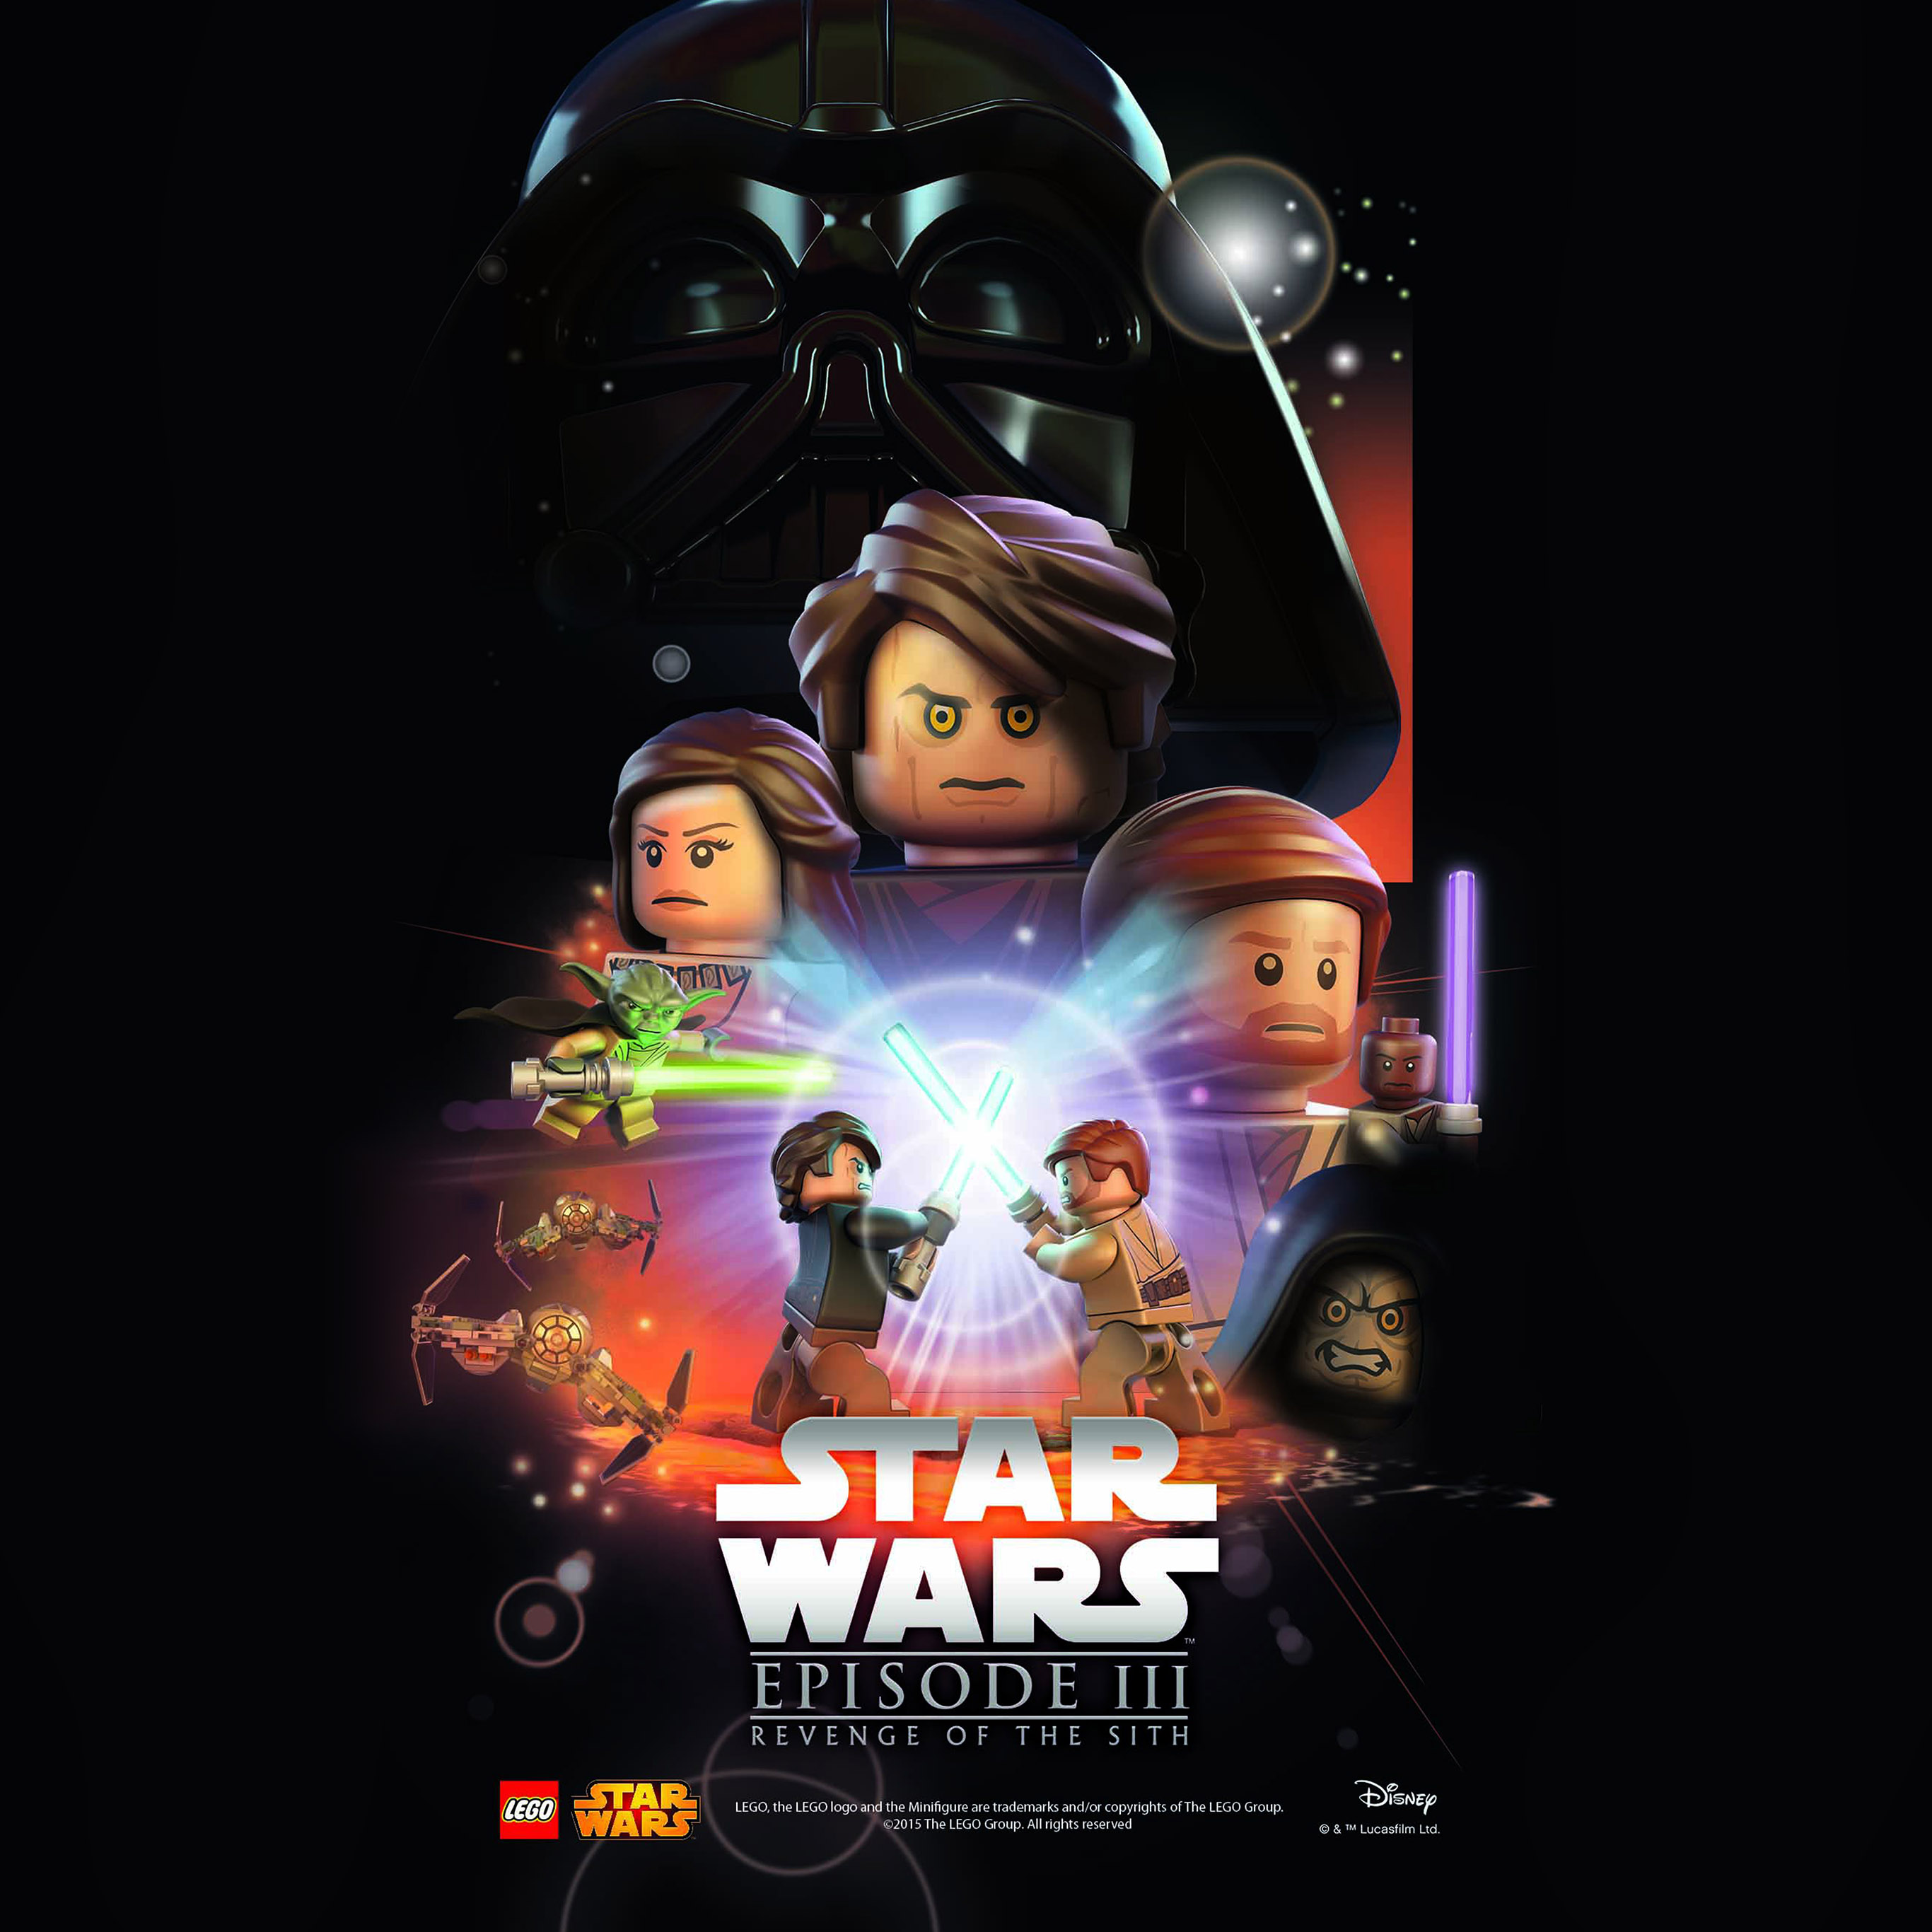 Androidpapersco Android Wallpaper Ap22 Starwars Lego